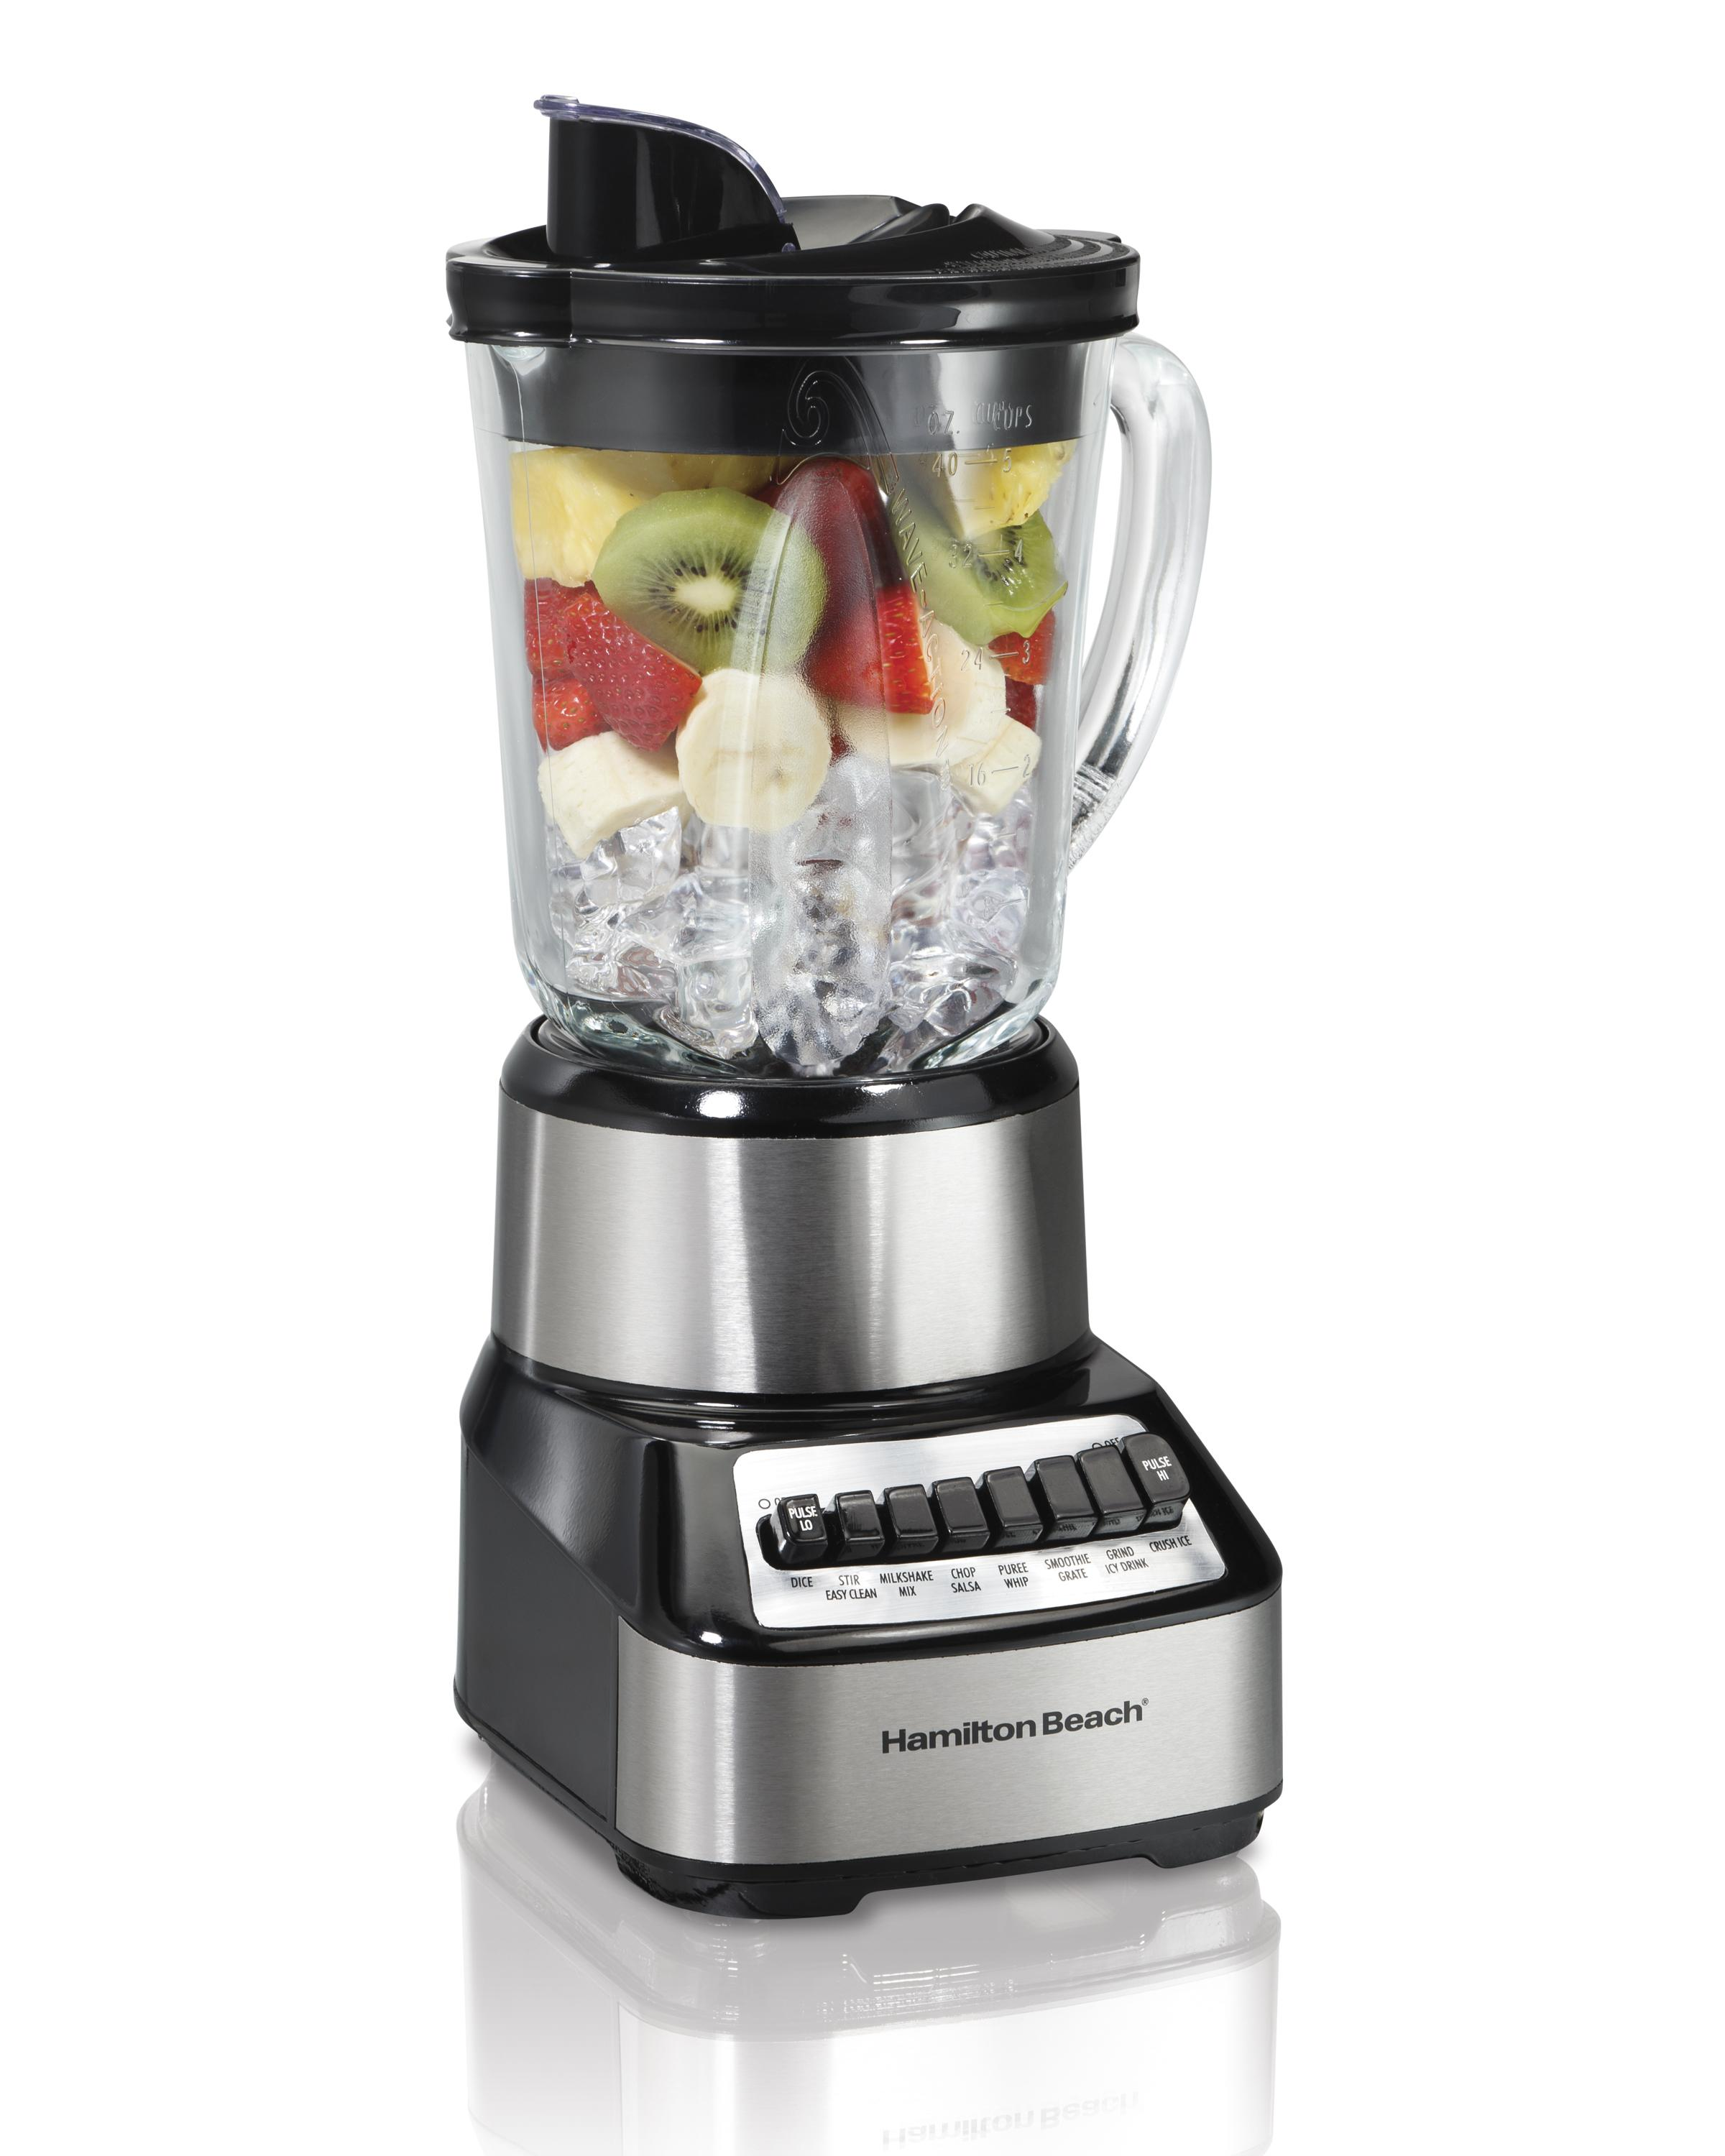 hamilton beach wave crusher multi function blender with 14 speeds 40 oz glass jar. Black Bedroom Furniture Sets. Home Design Ideas